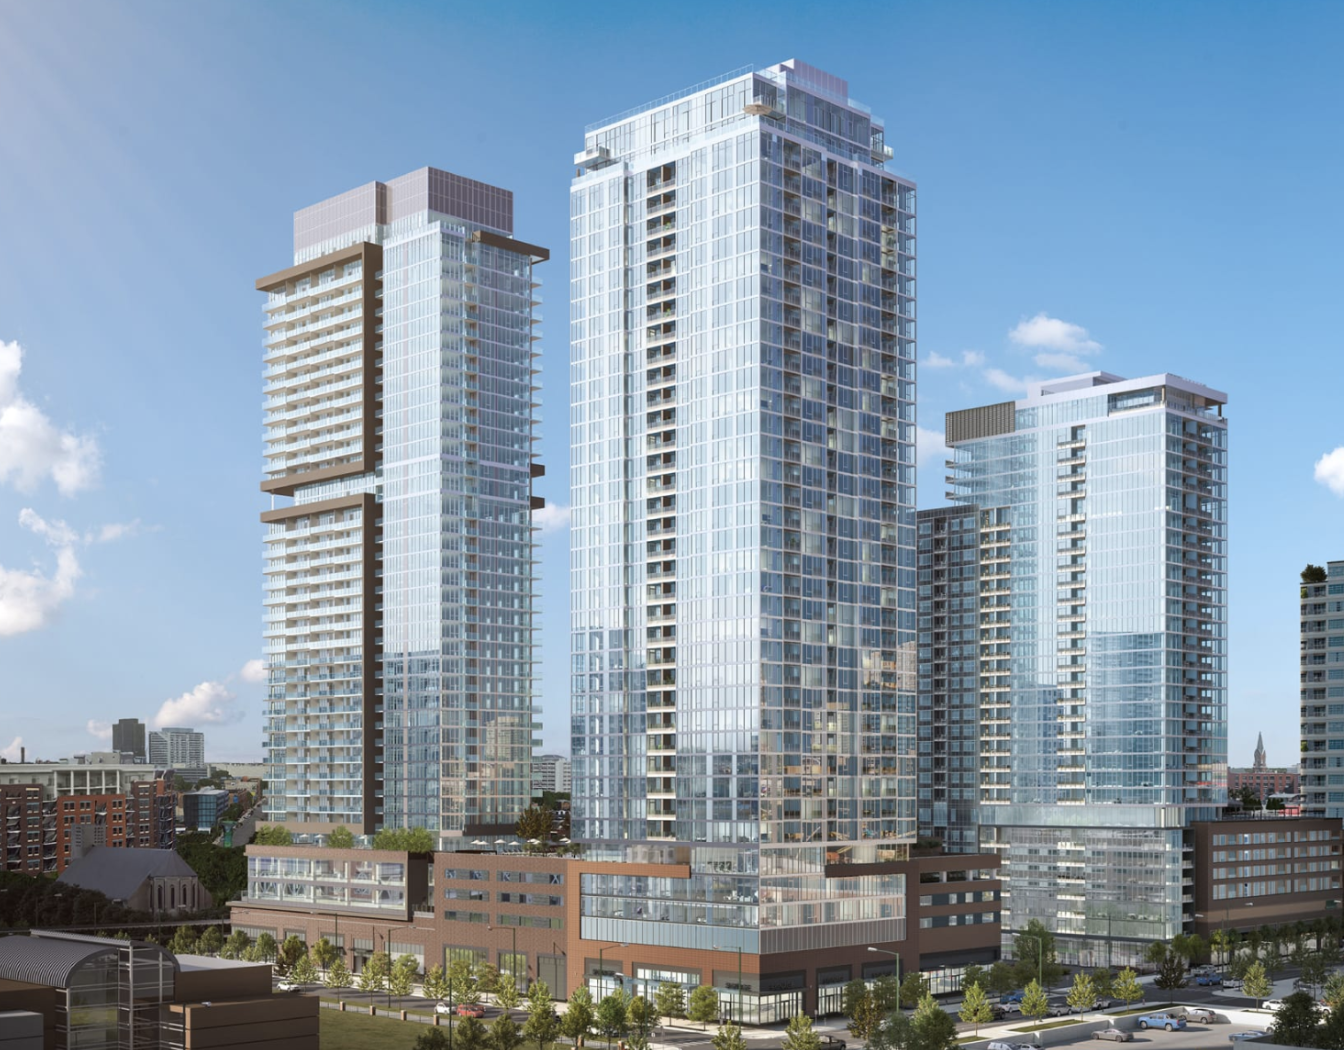 A rendering of three modern, glassy high-rise towers with masonry bases. The buildings are tightly clustered together.